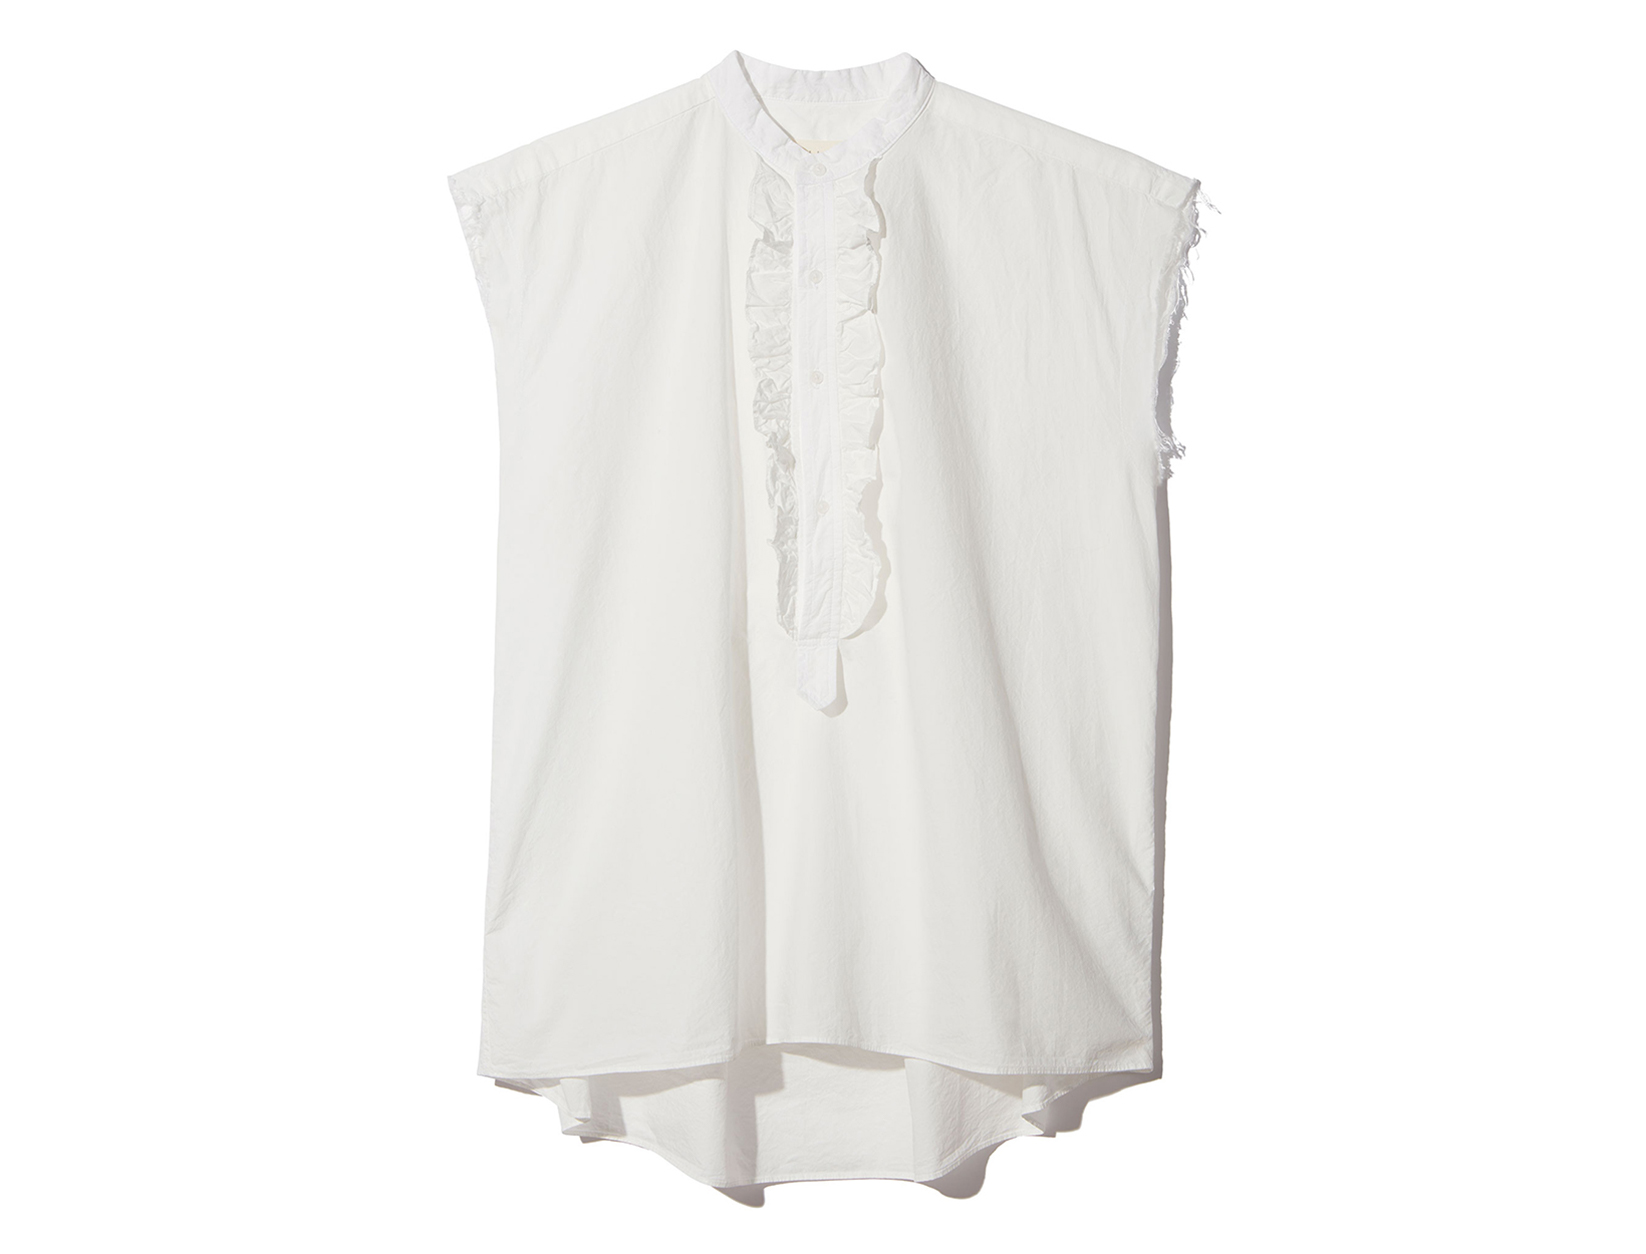 One Piece, Three Ways: Ruffled Blouse